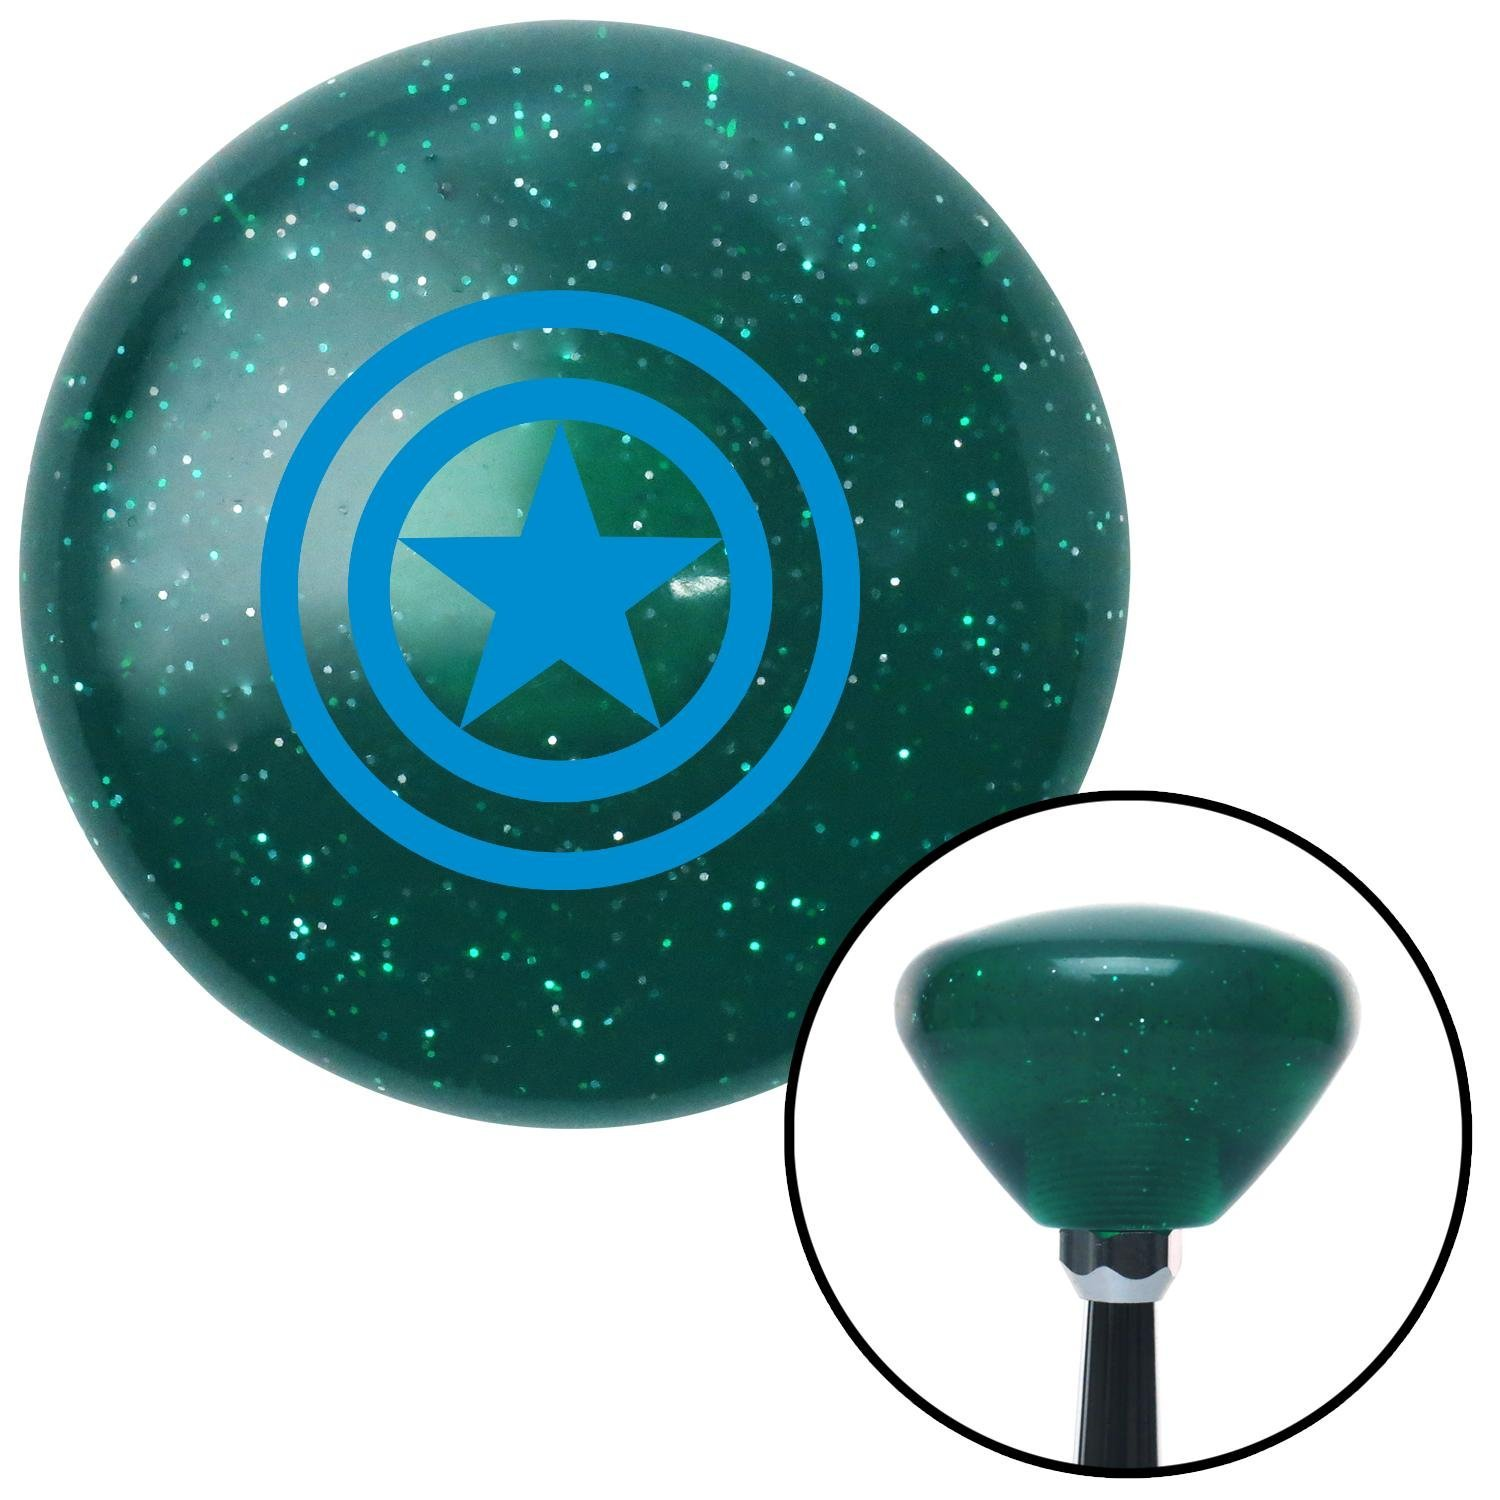 Blue Star Inside Circles American Shifter 207647 Green Retro Metal Flake Shift Knob with M16 x 1.5 Insert